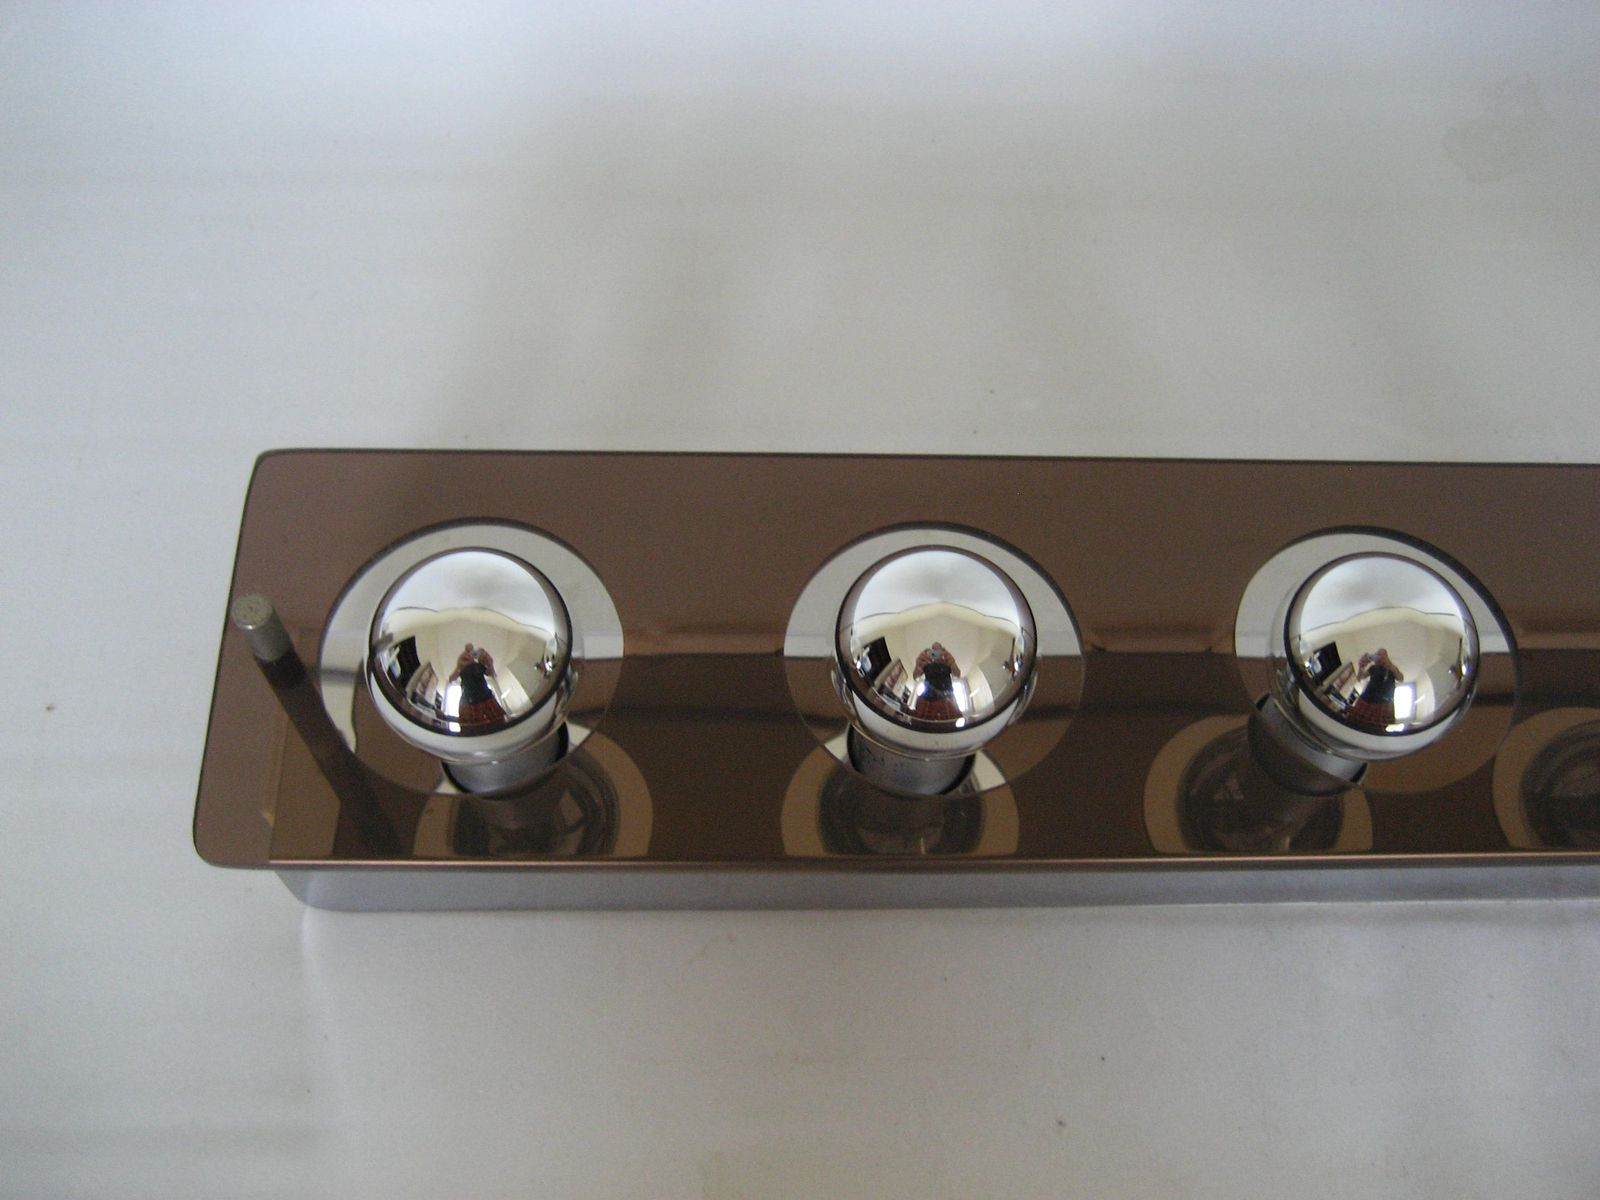 Vintage Italian Wall Lamp with Seven Lights from Ticino, 1970s for sale at Pamono